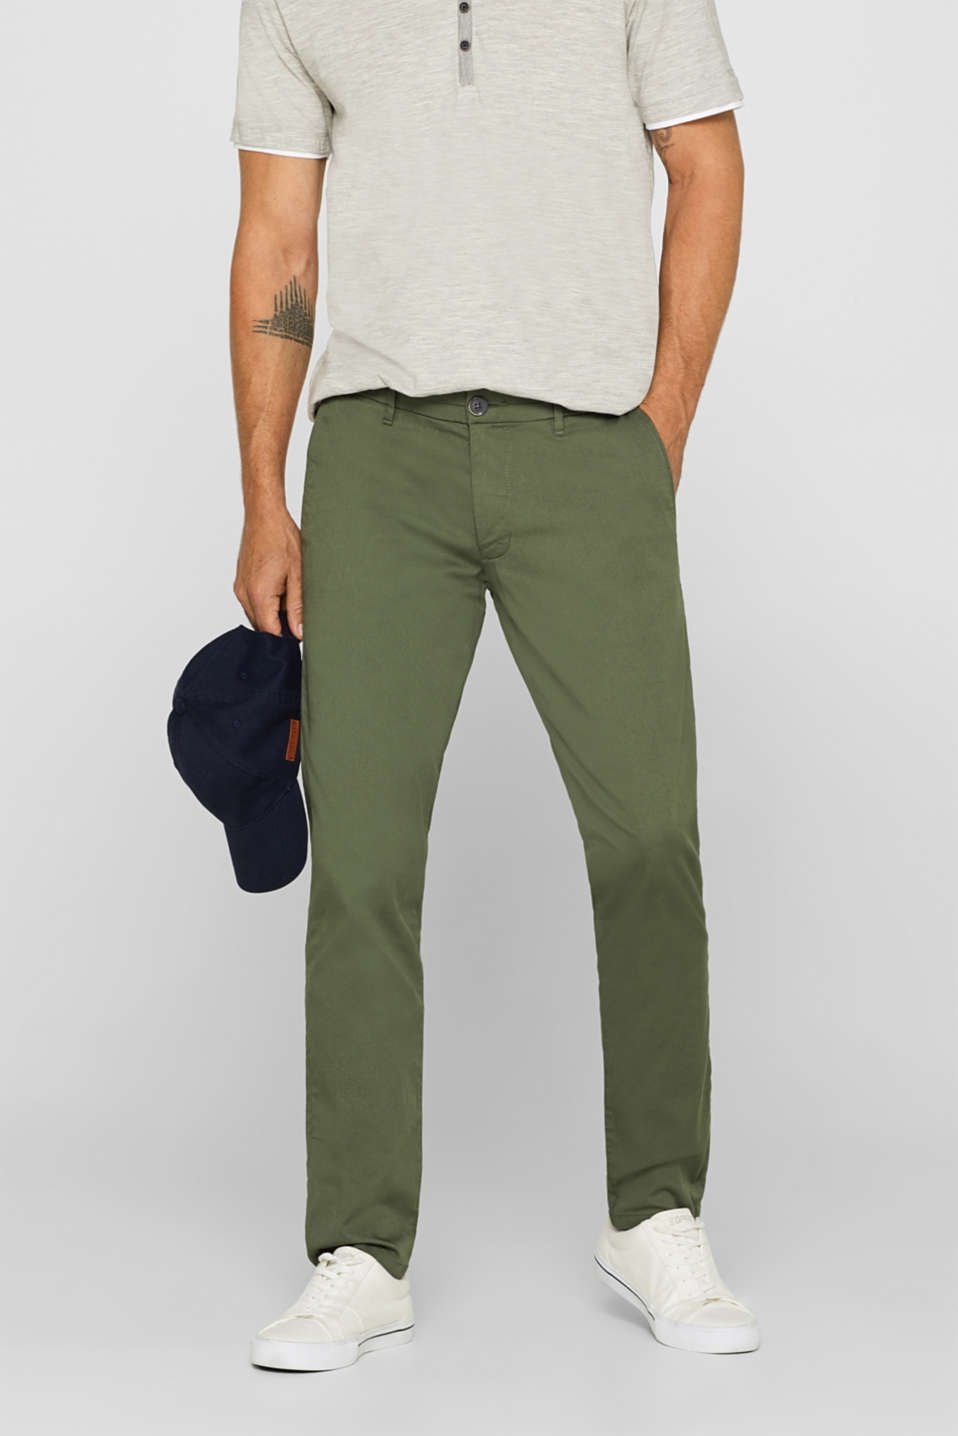 Esprit - 5-Pocket-Pants mit Stretchkomfort